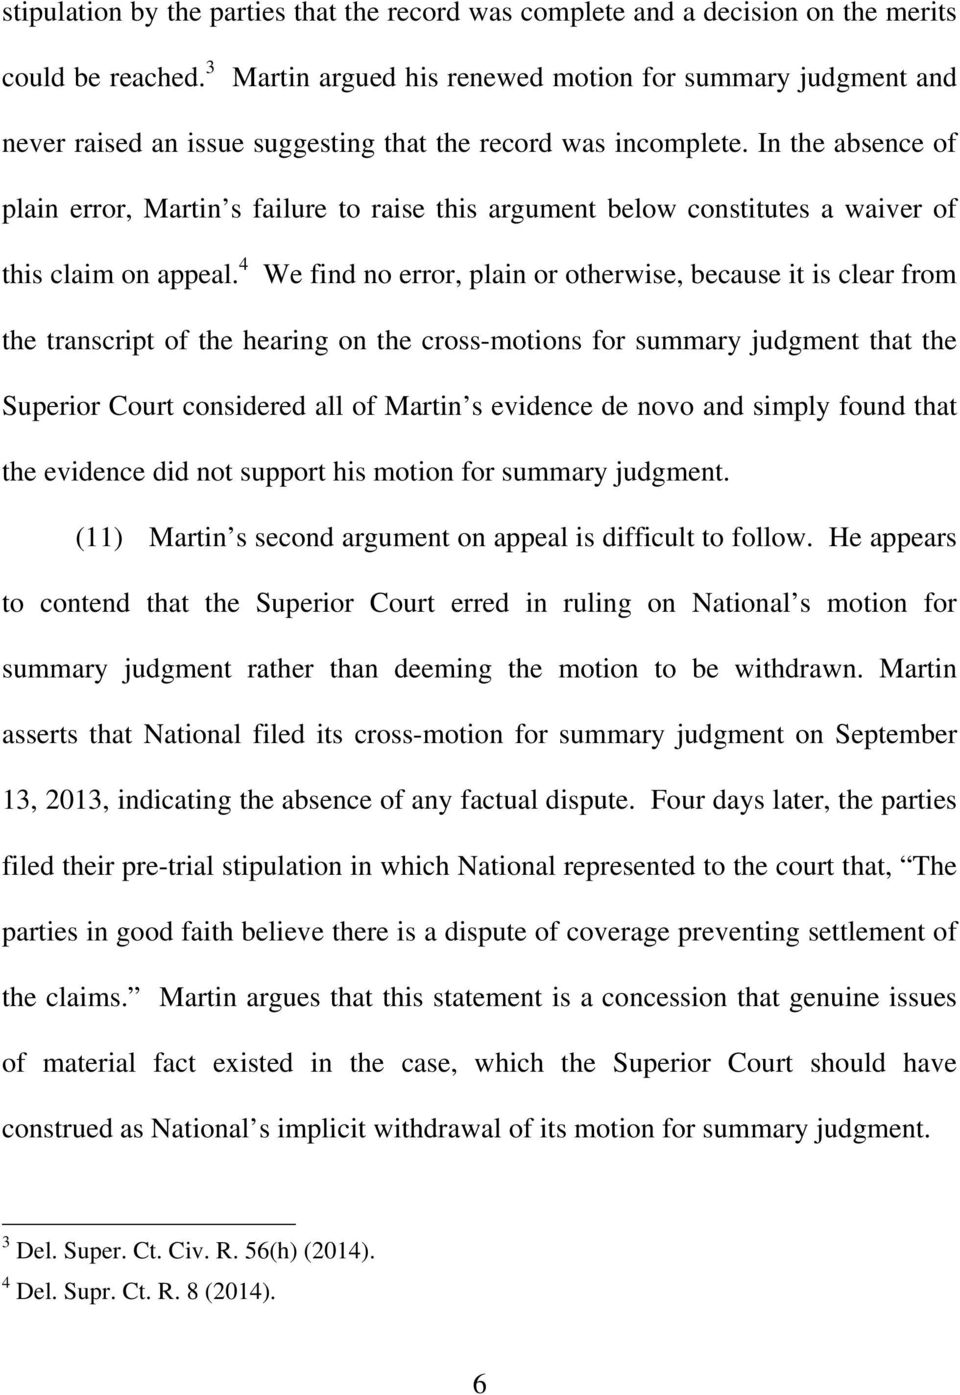 In the absence of plain error, Martin s failure to raise this argument below constitutes a waiver of this claim on appeal.